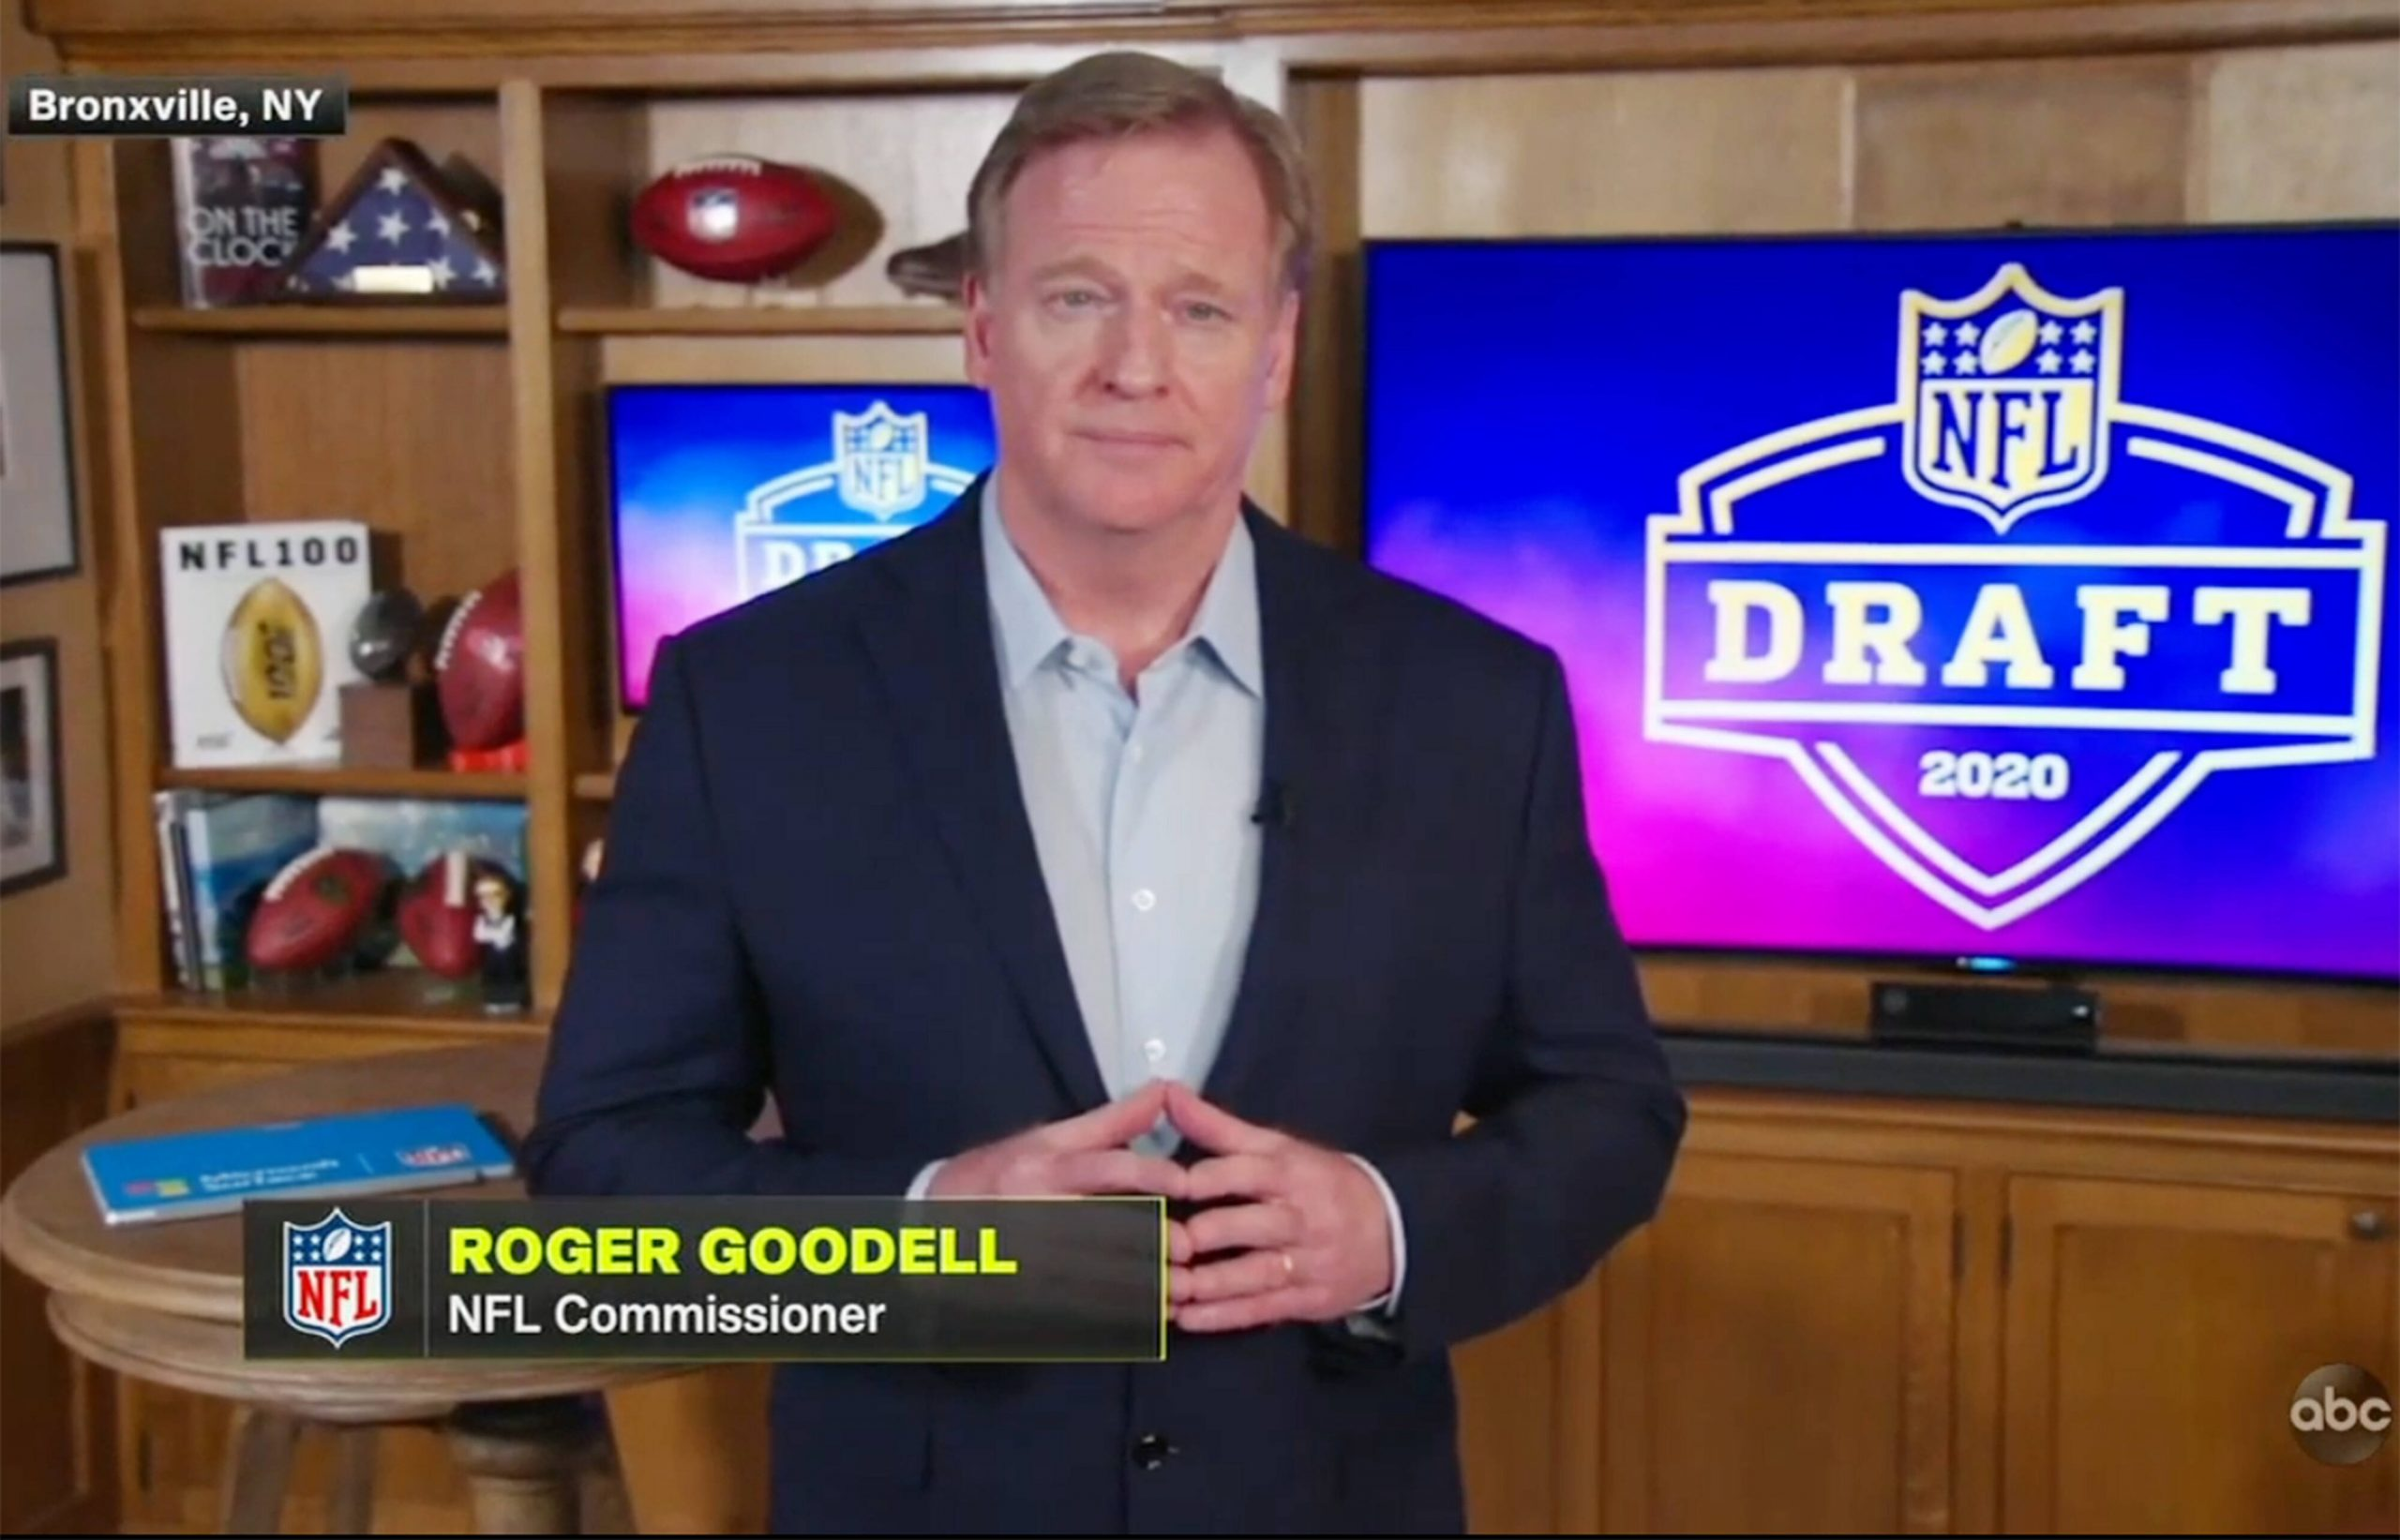 A screen grab of NFL, American Football Herren, USA commissioner Roger Goodell speaking from his home in Bronxville, New